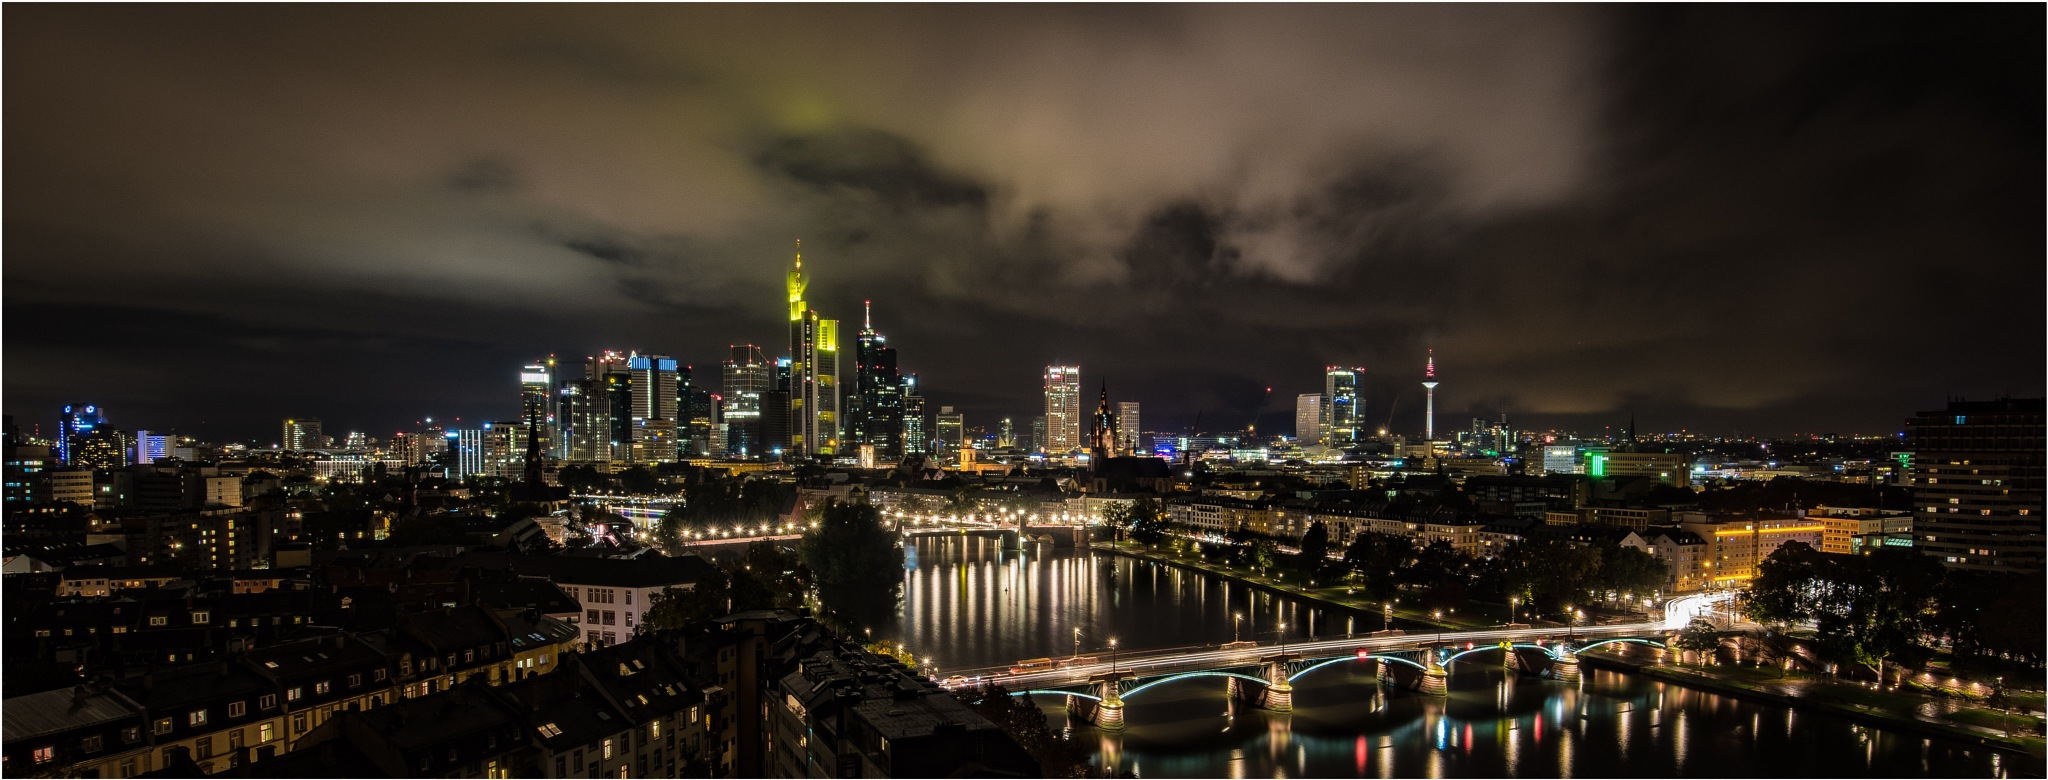 Frankfurt am Main by Dr. Ortwin Khan